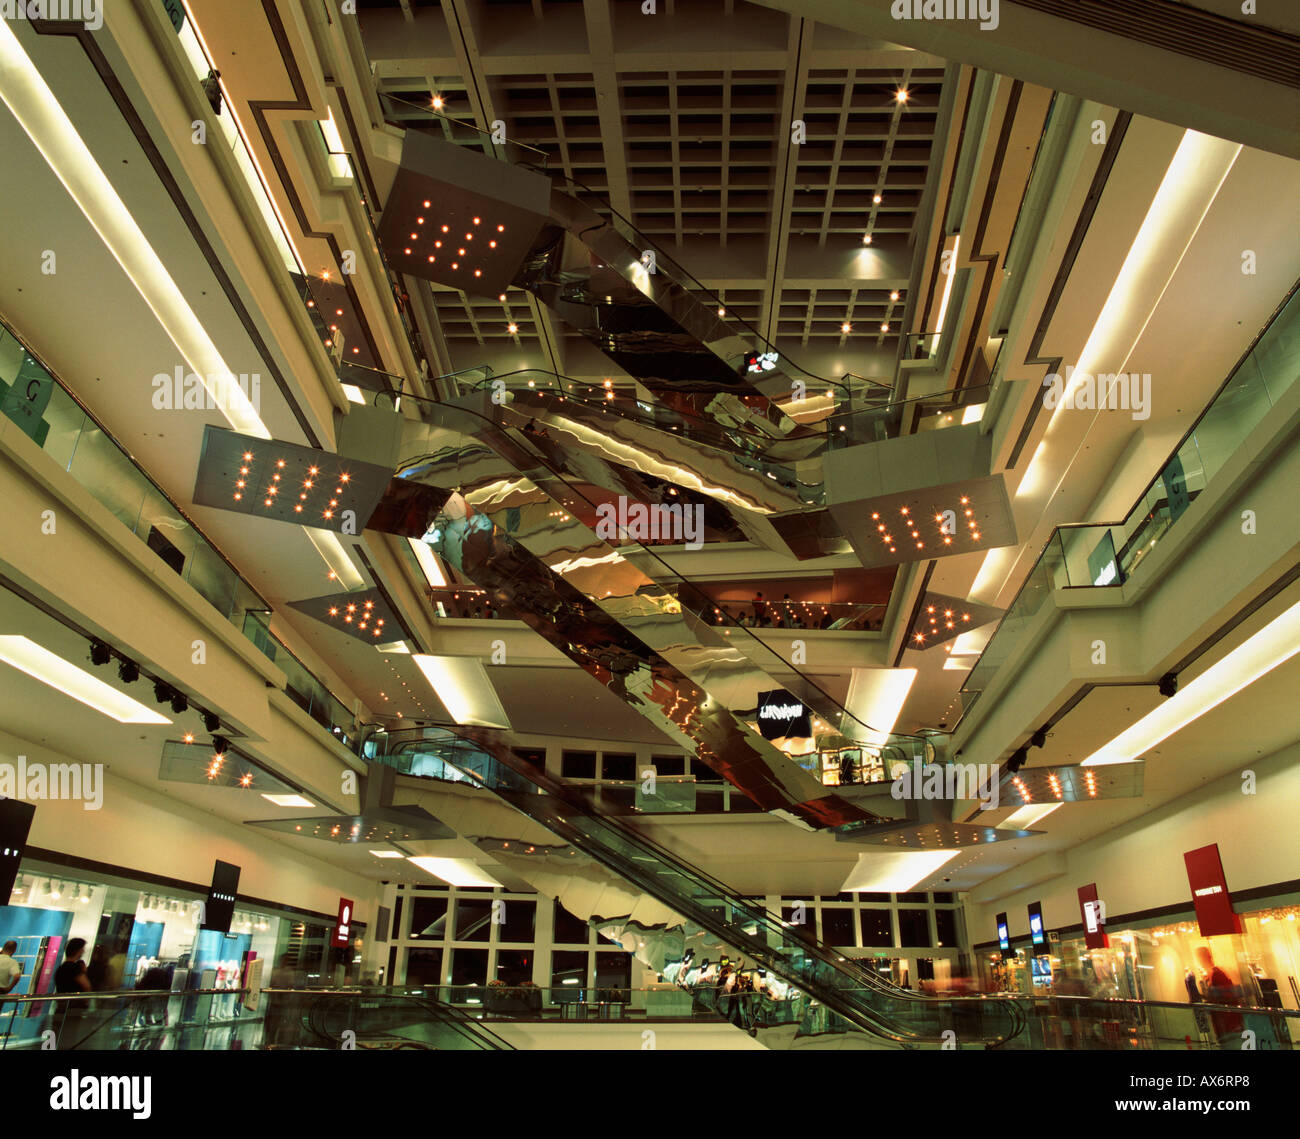 Hong Kong Shopping: Festival Walk Mall In Kowloon Tong Hong Kong Is One Of The